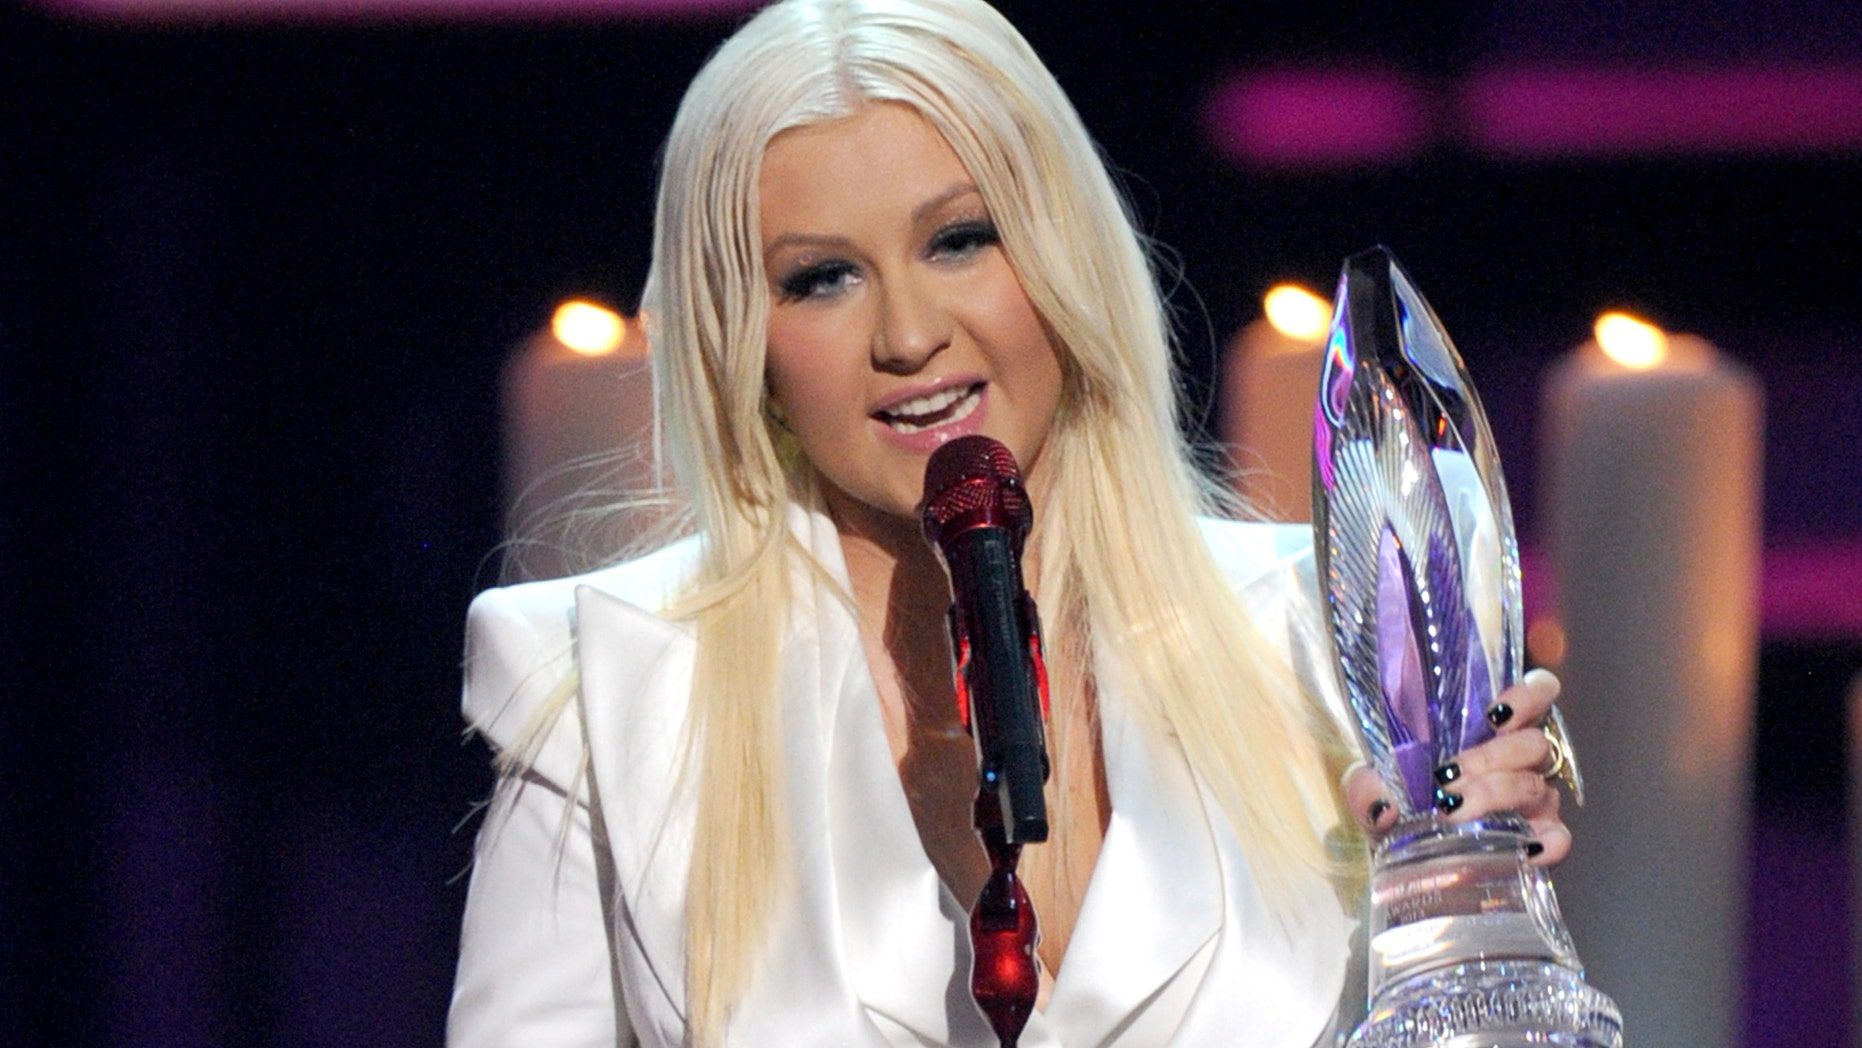 Jan. 09, 2013: Singer Christina Aguilera accepts the People's Voice Award onstage at the 39th Annual People's Choice Awards at Nokia Theatre L.A. Live in Los Angeles, Cali.